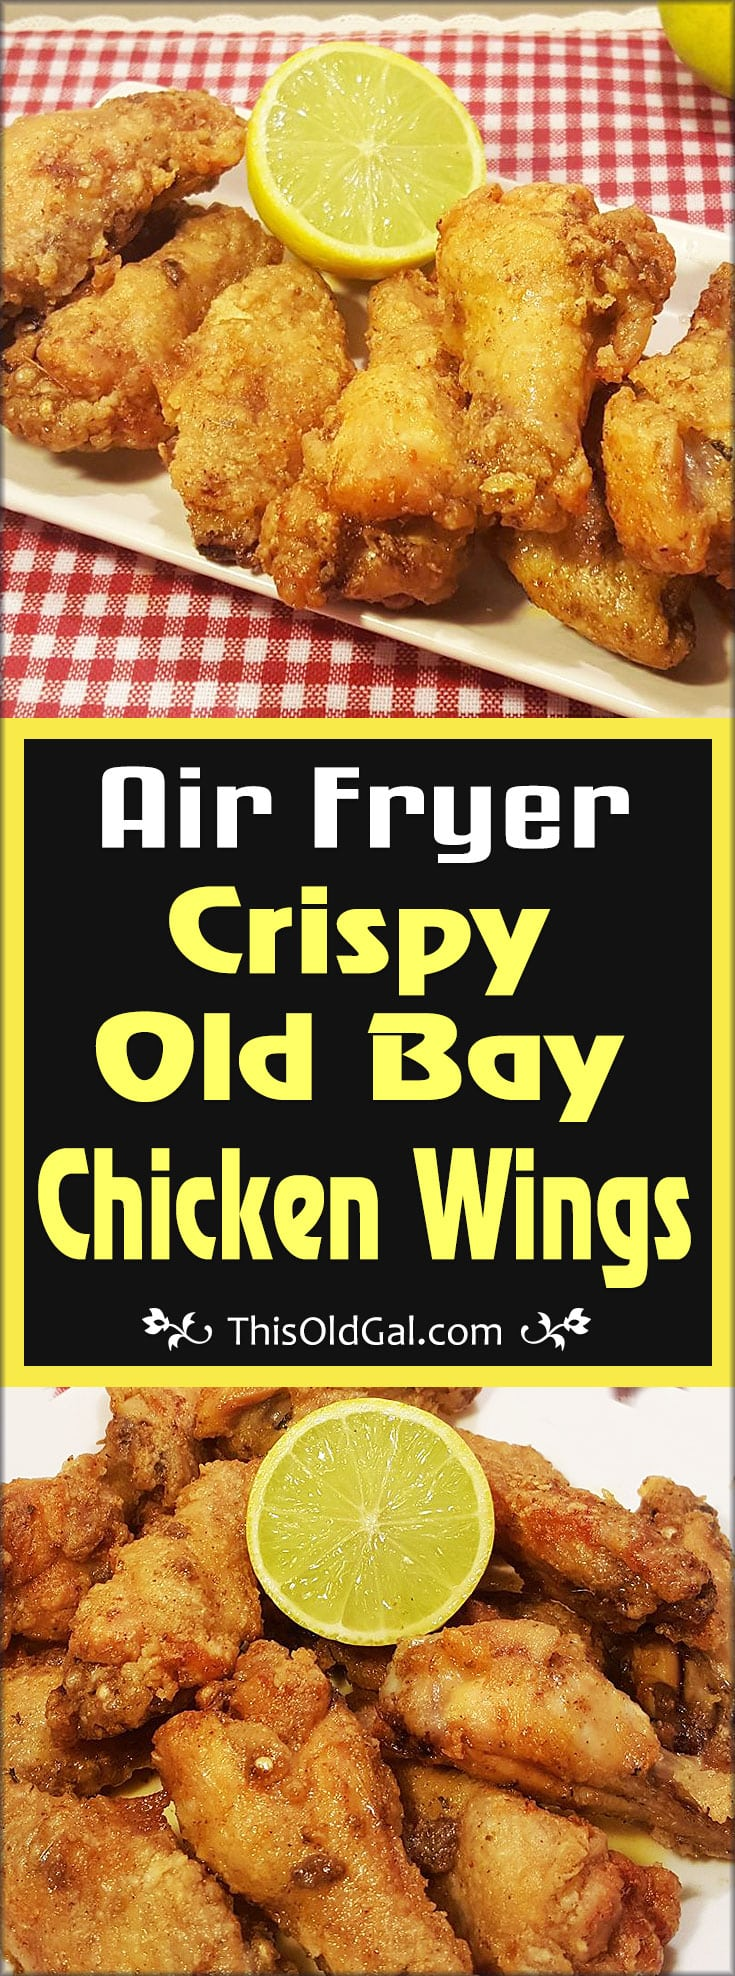 Air Fryer Crispy Old Bay Chicken Wings with Warm Lemon Butter